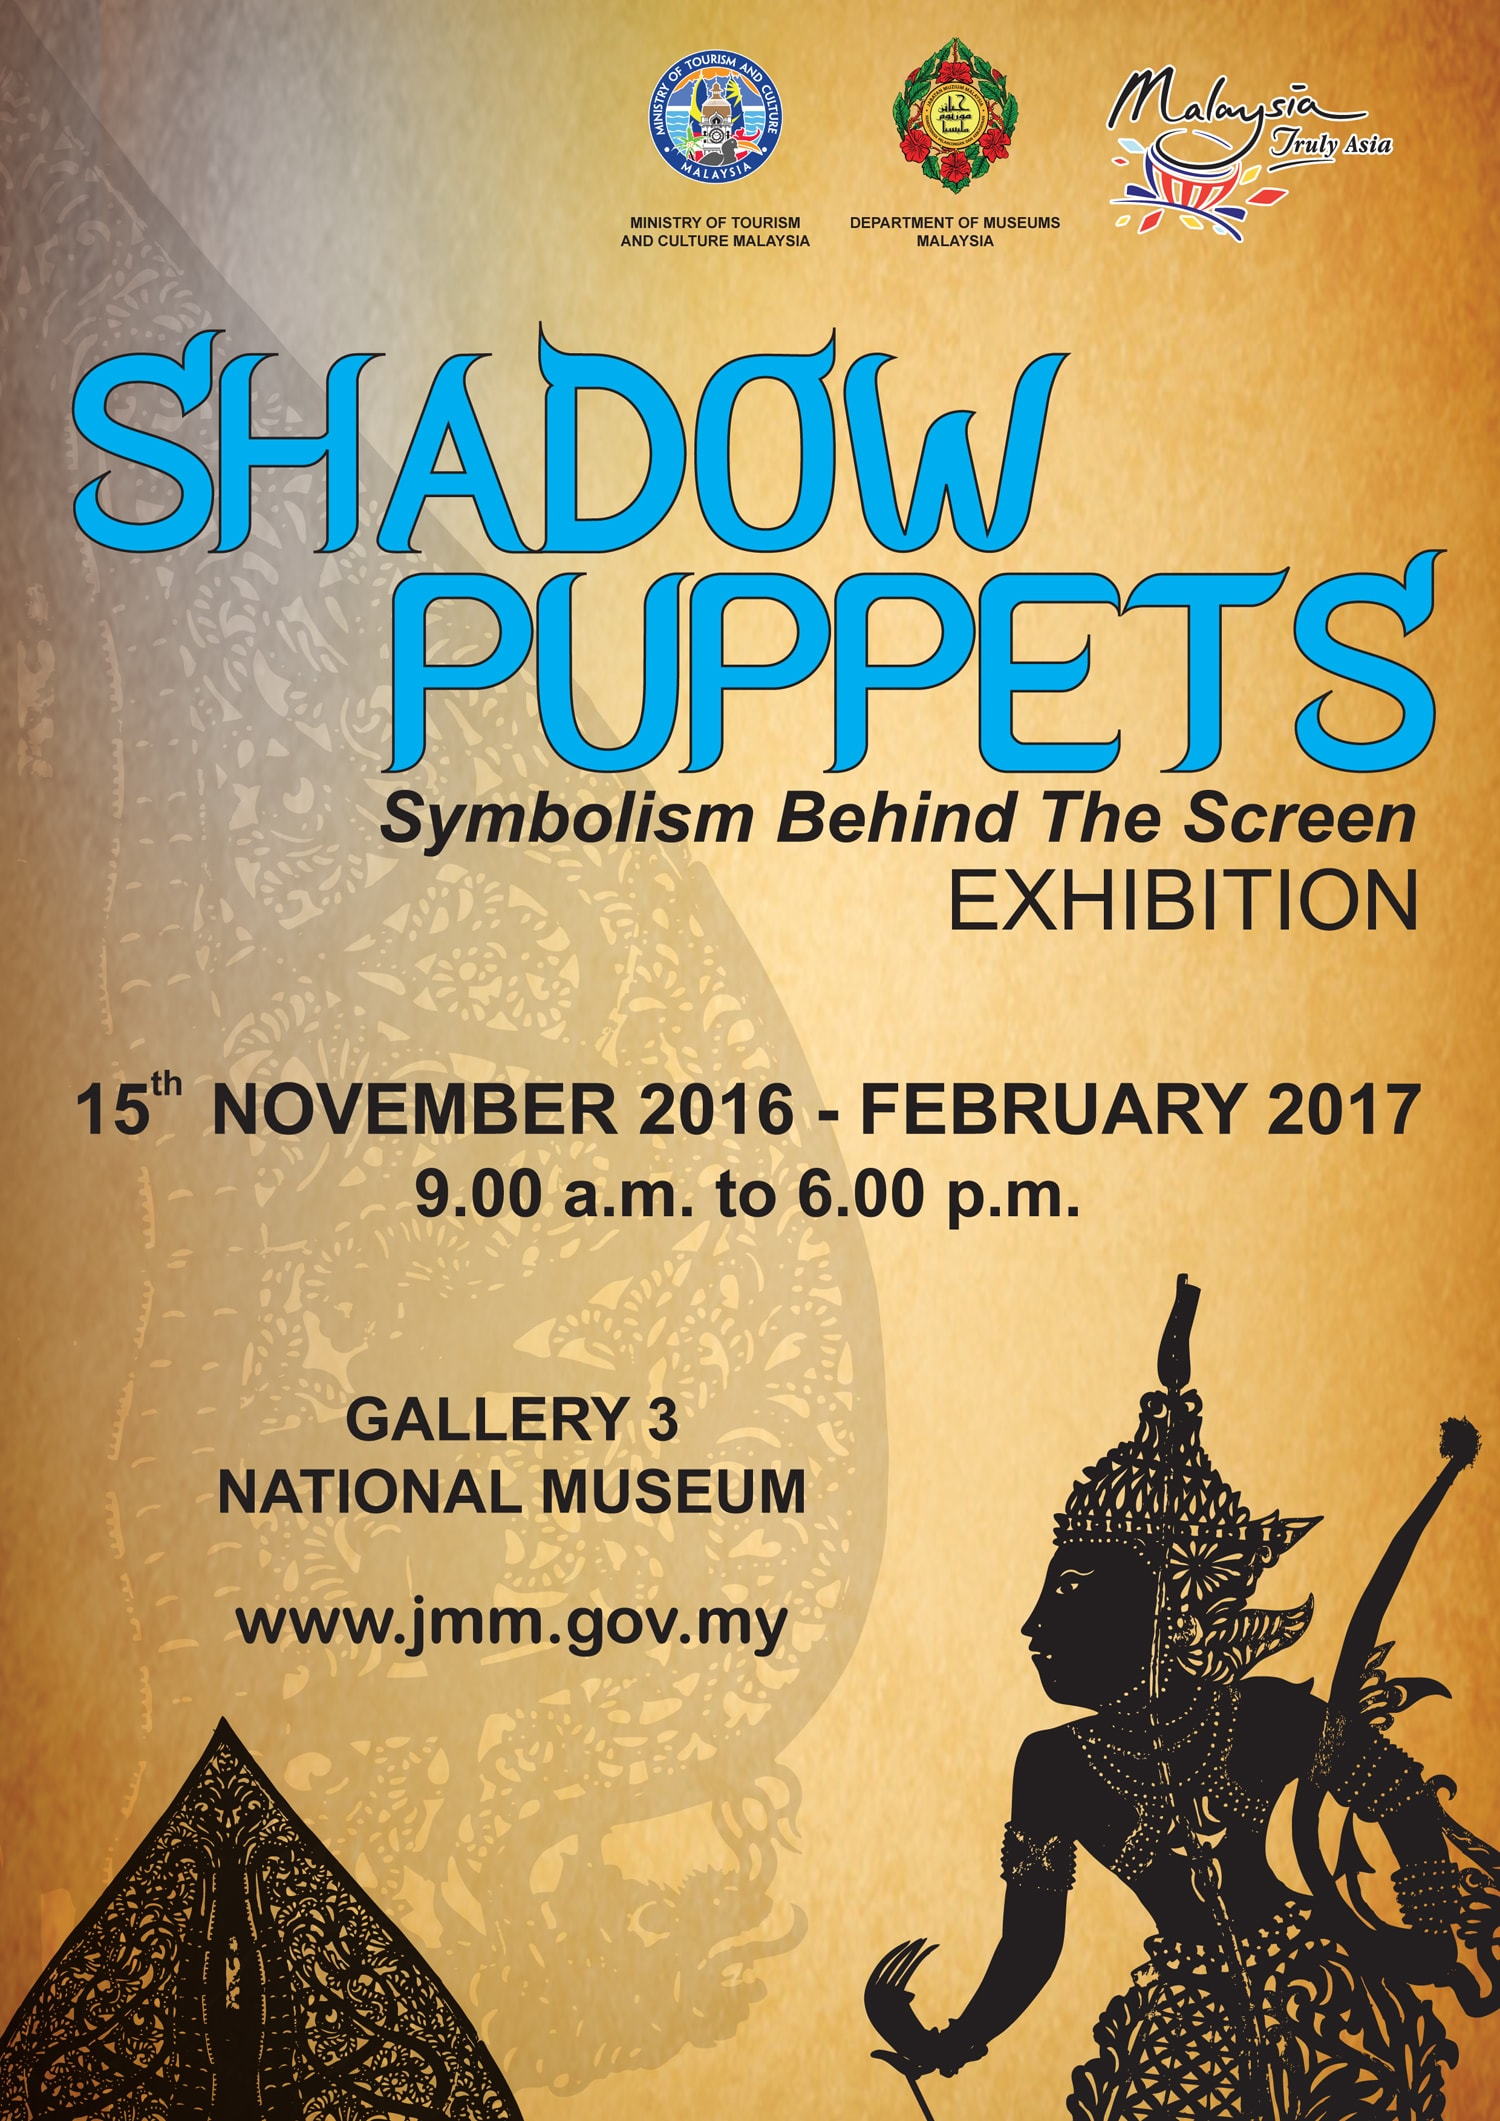 Shadow Puppets Exhibition:Symbolism Behind The Screen